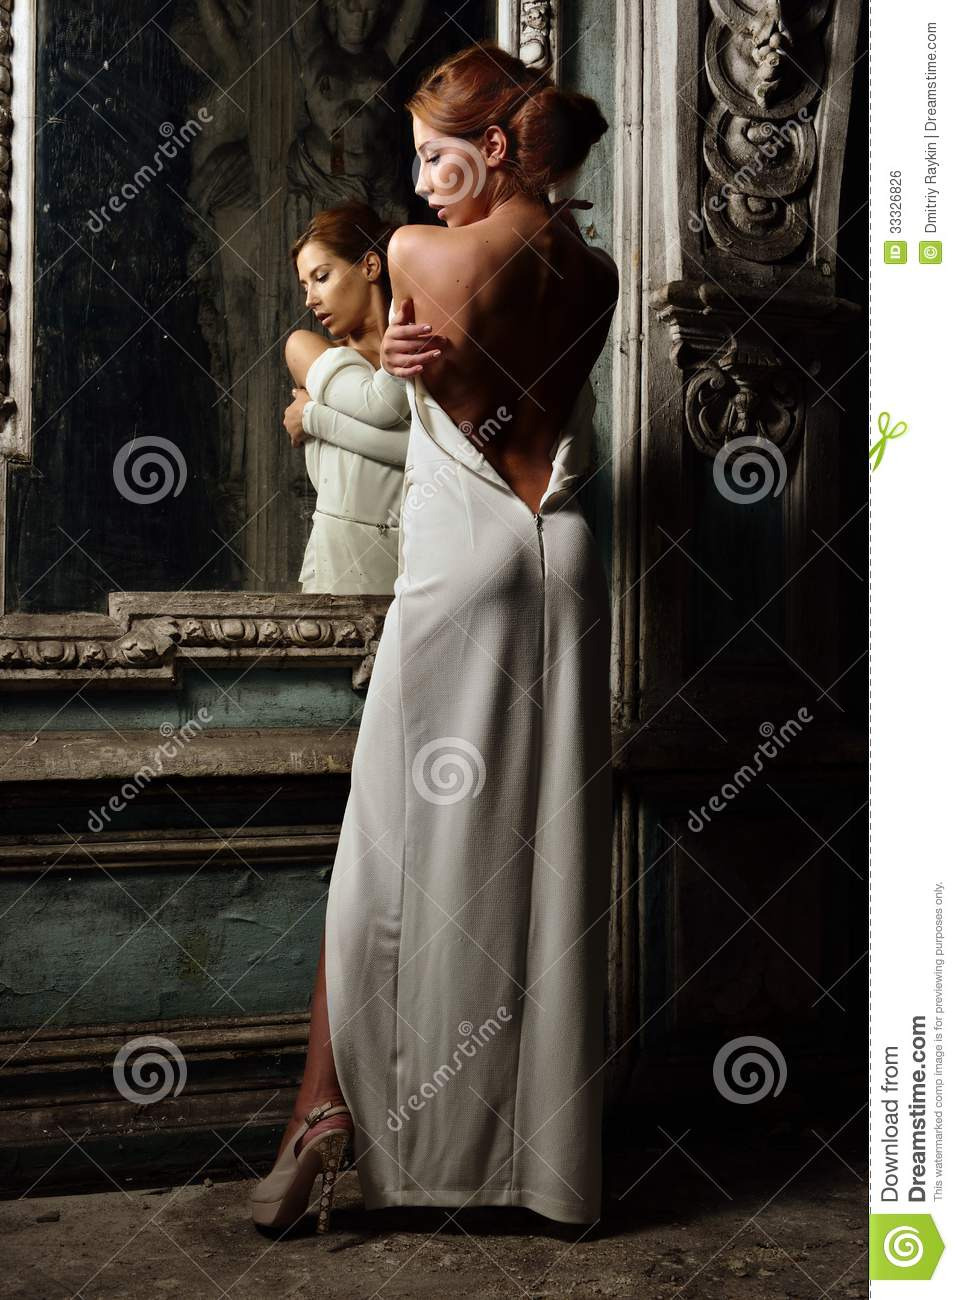 Beautiful Woman In White Dress With Naked Back. Stock